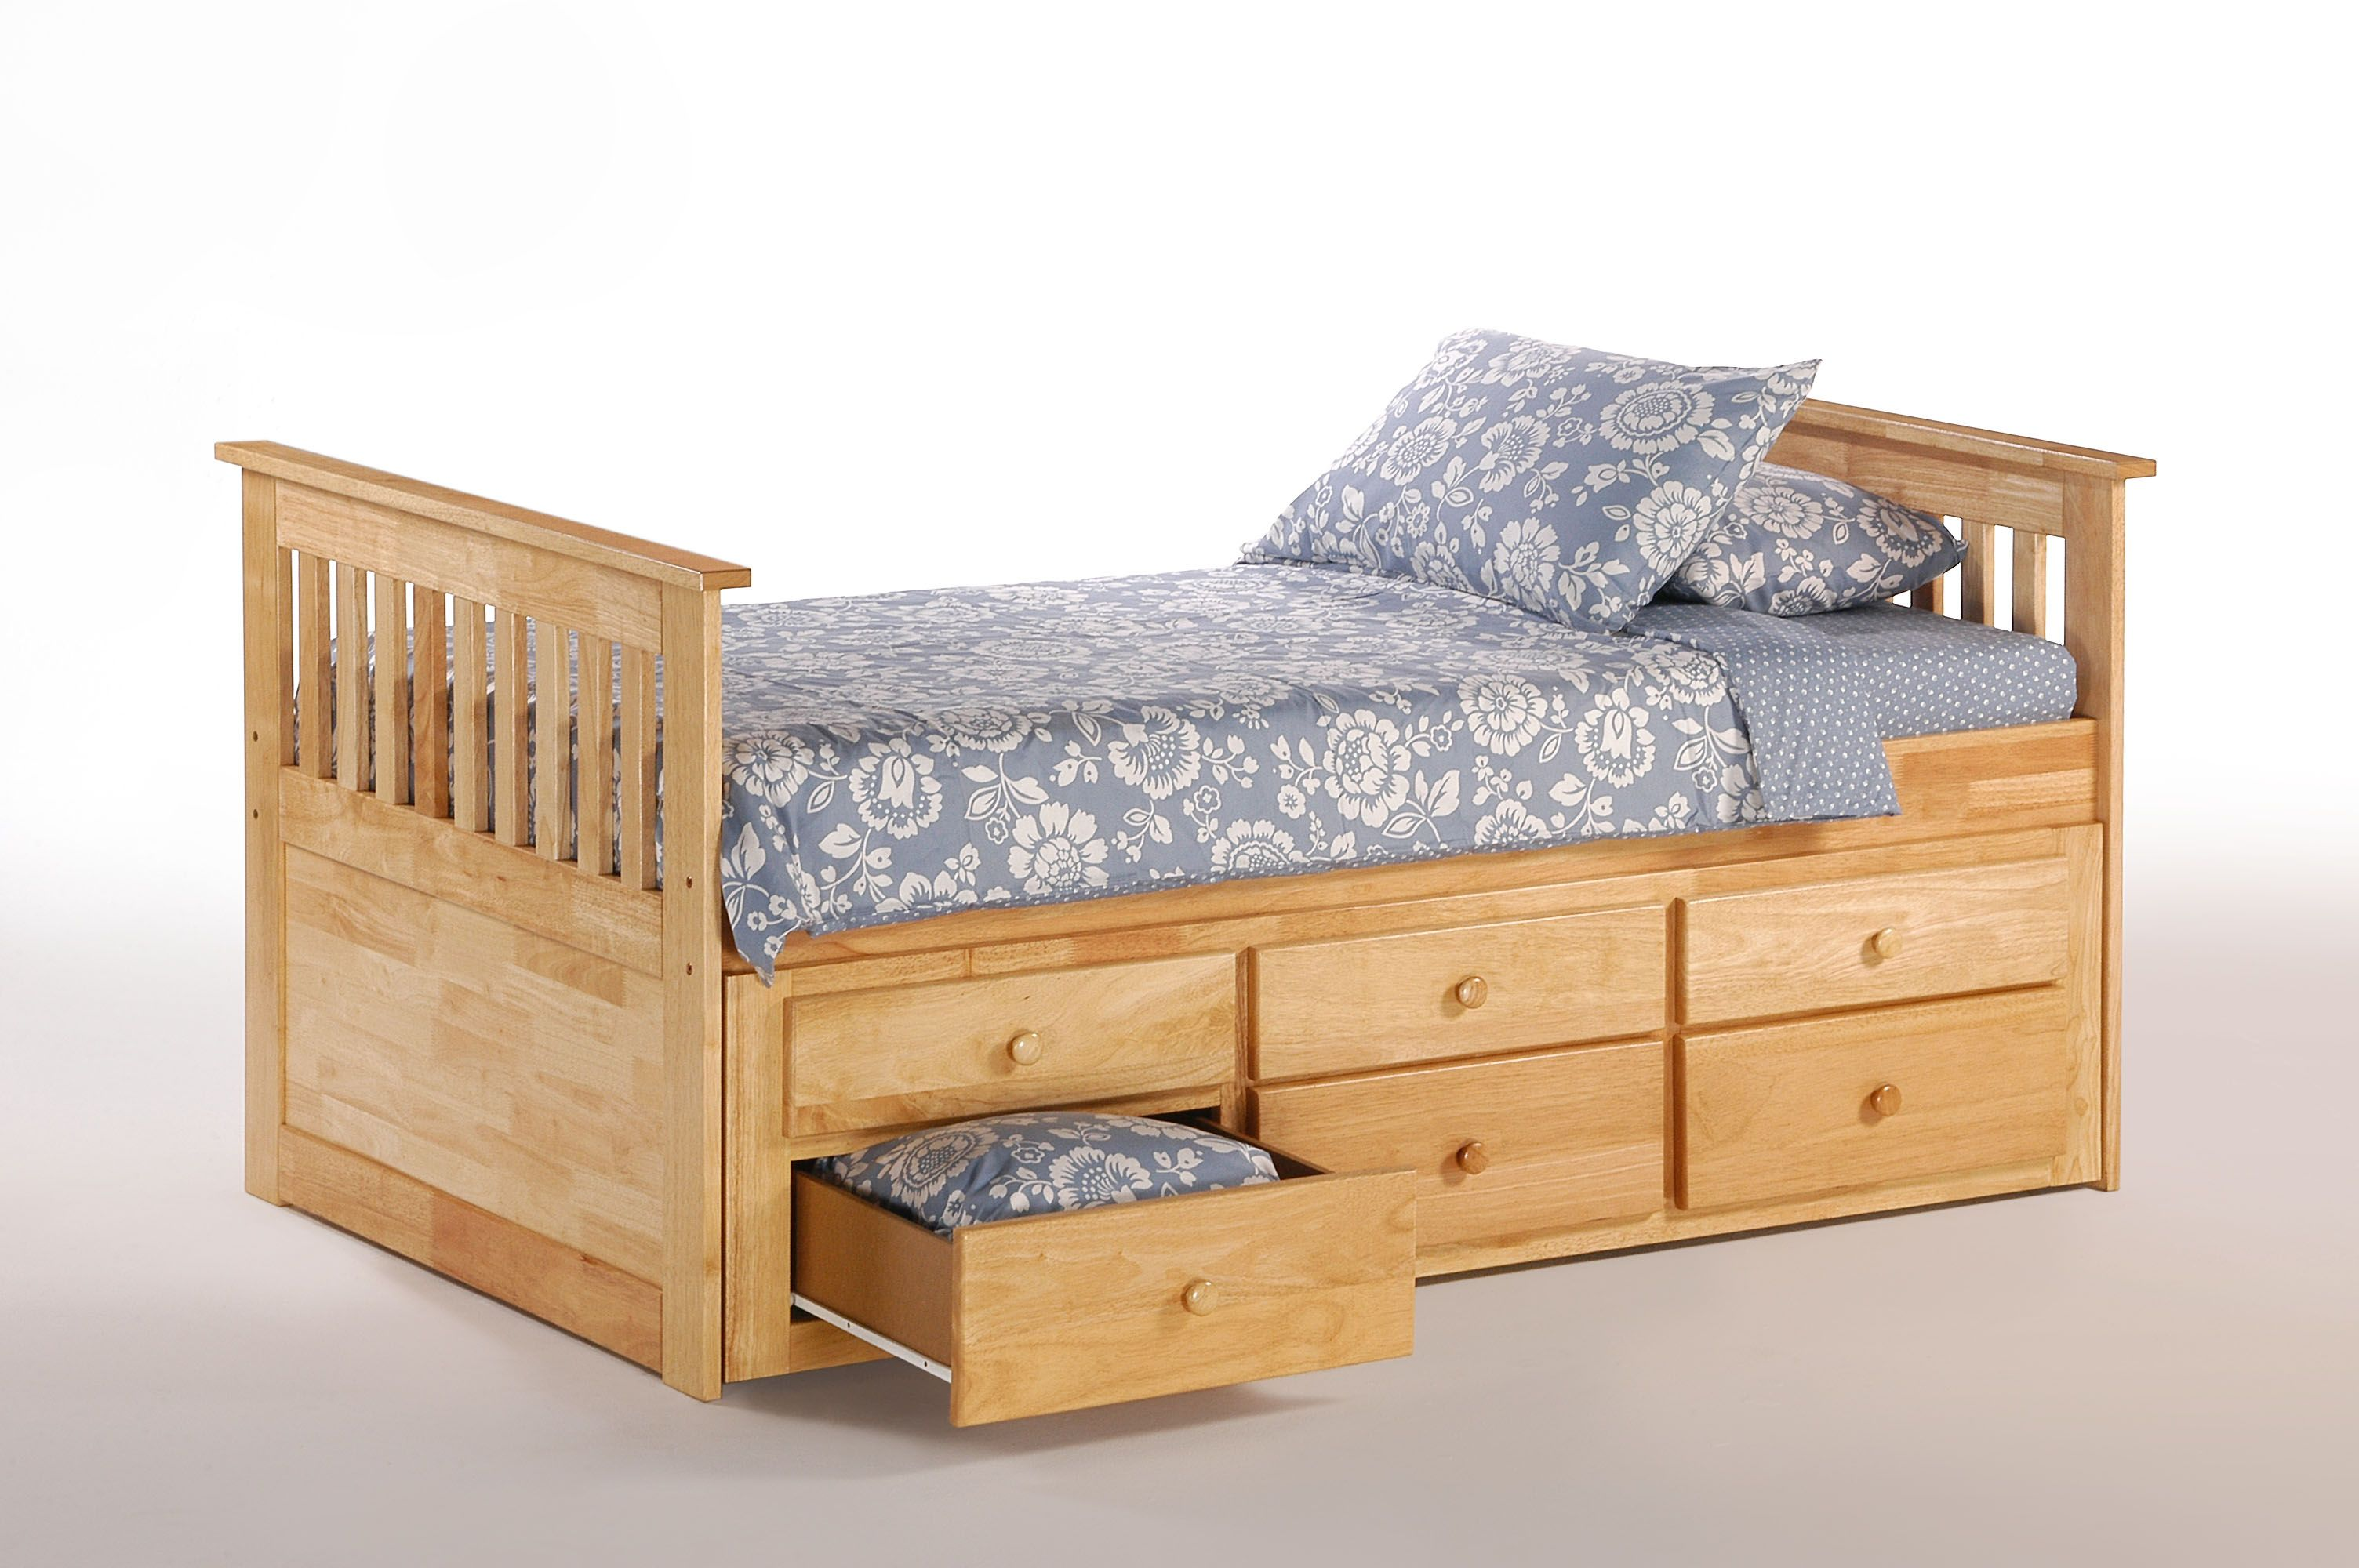 Kids full size captains bed with storage - 17 Best Ideas About Kids Beds With Storage On Pinterest Bunk Beds With Storage Beds With